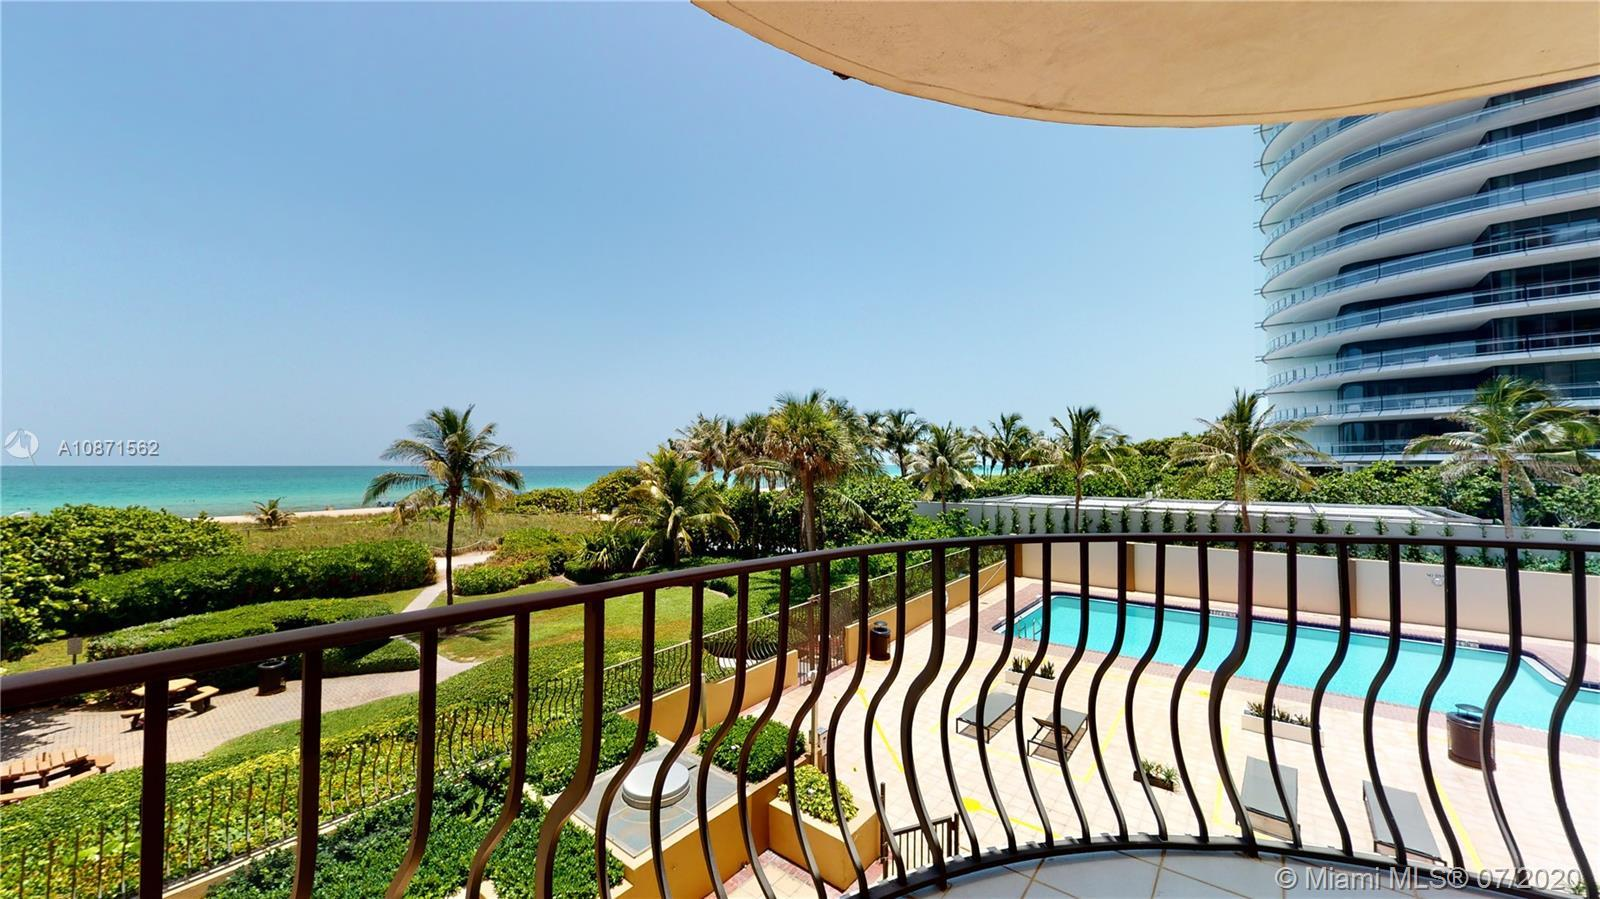 SPECTACULAR PANORAMIC DIRECT OCEAN VIEWS SPACIOUS 3 BED 2.5 BATHS. LARGE MASTER SUITE AND LARGE LIVI